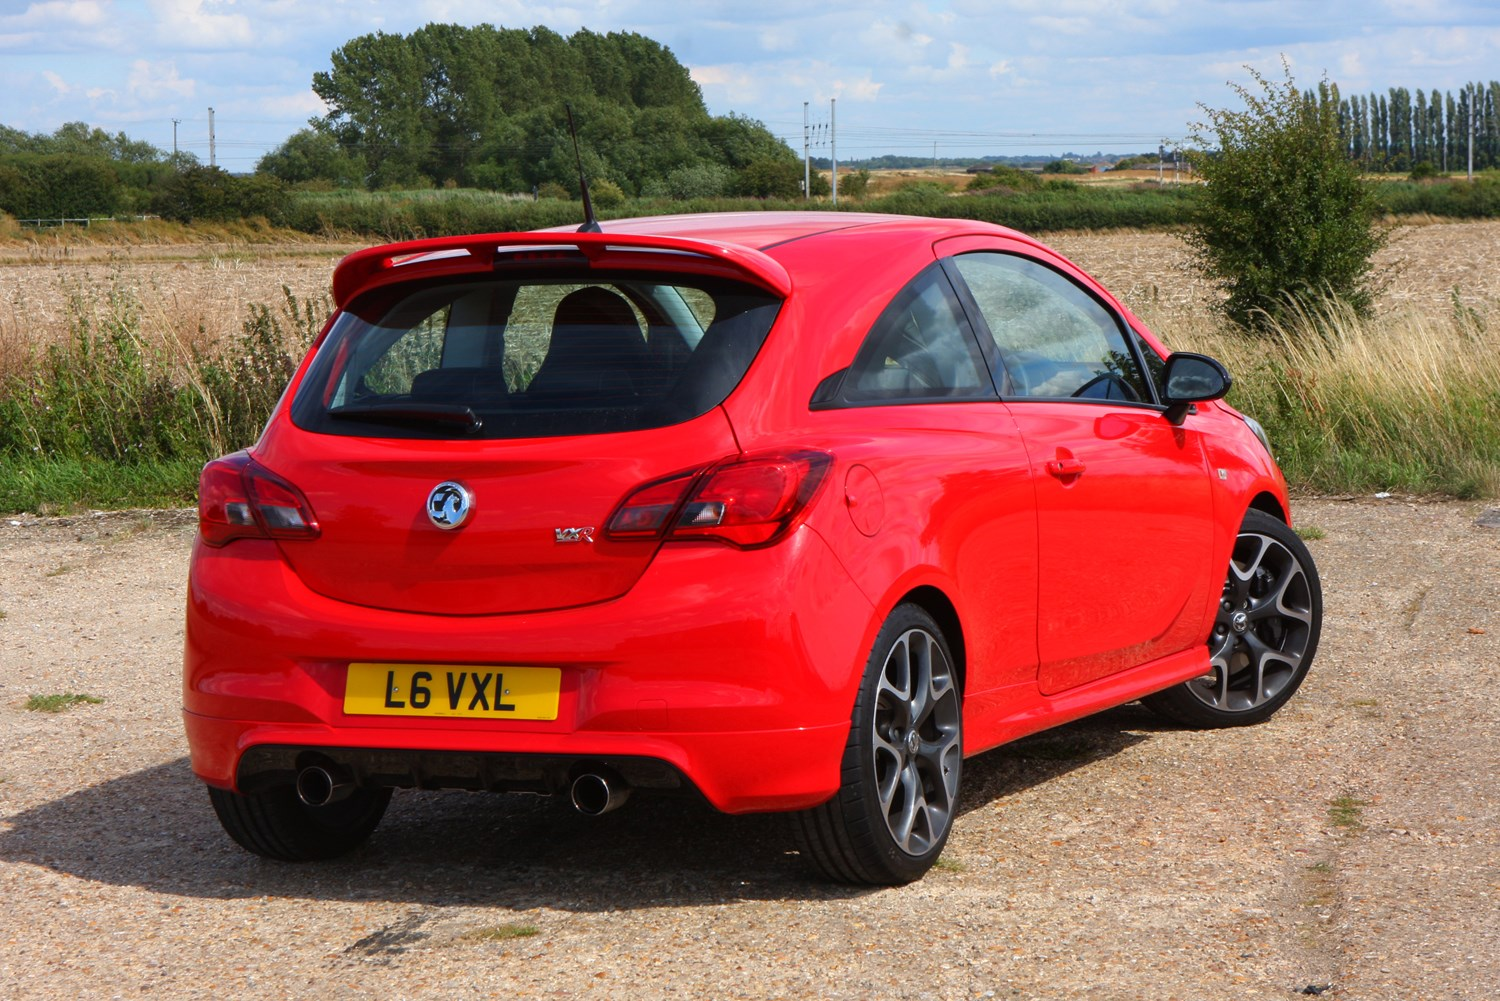 Used Vauxhall Corsa VXR (2015 - 2018) Review | Parkers